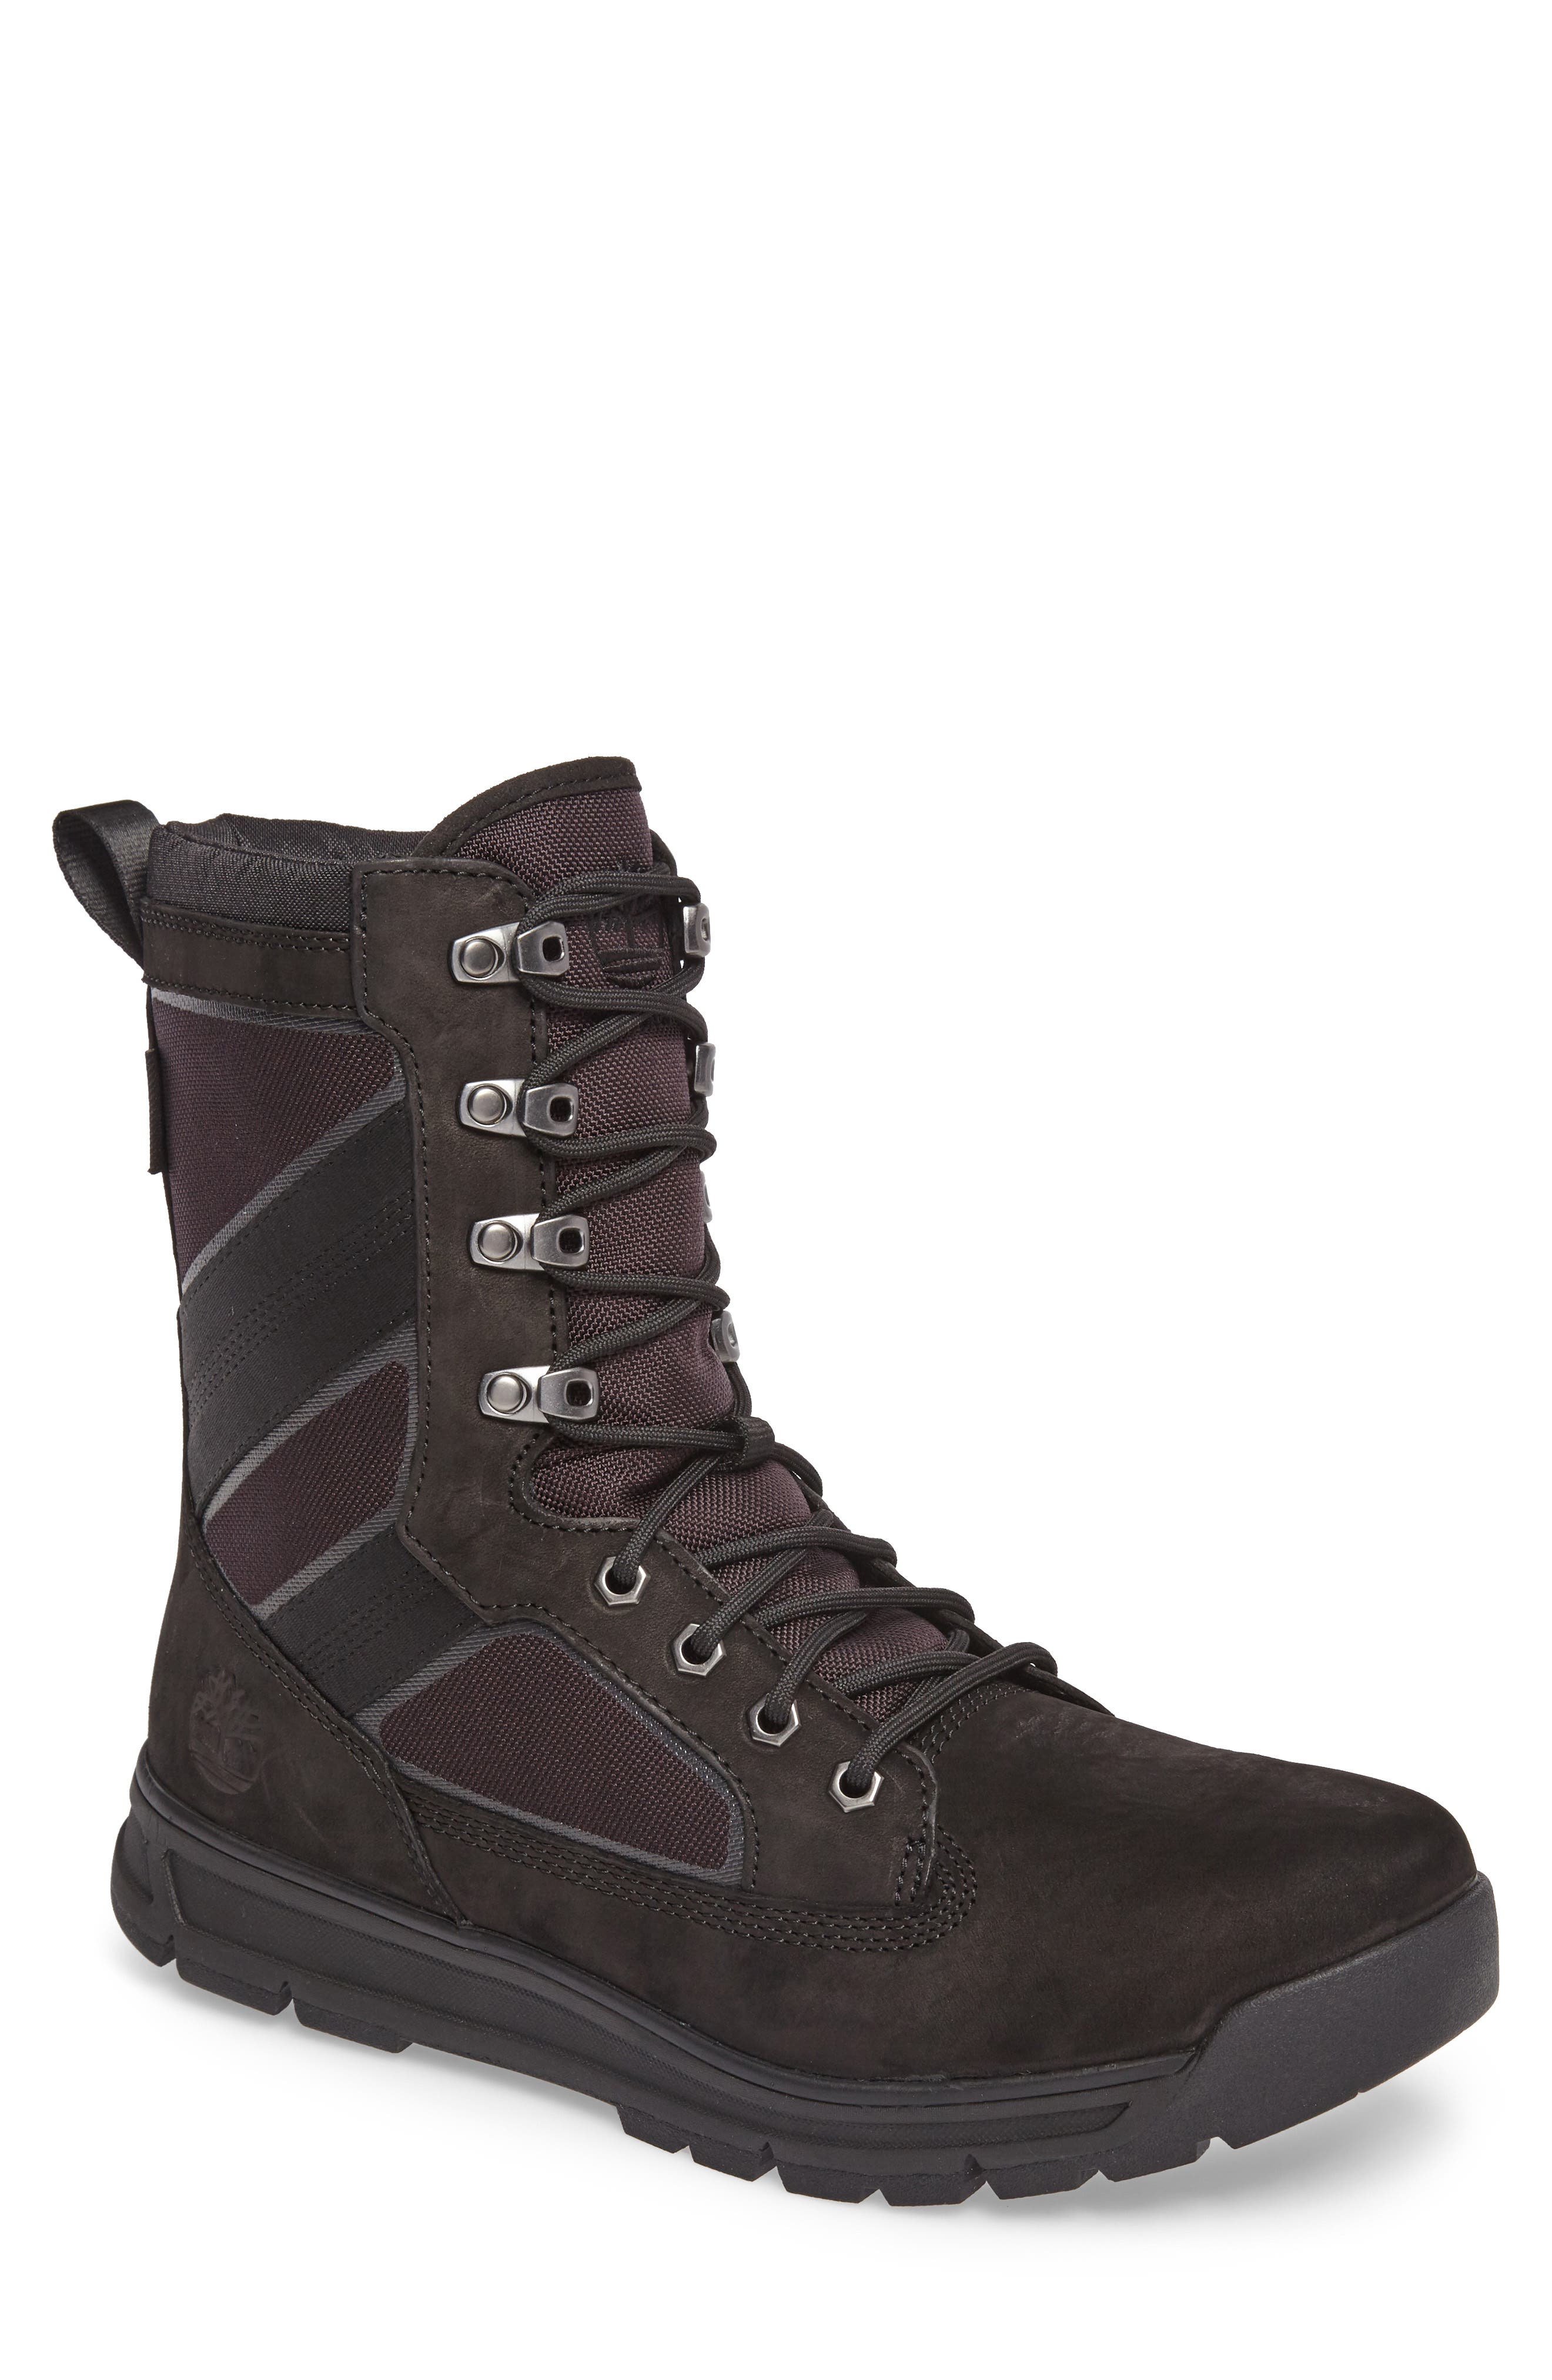 Field Guide Boot,                         Main,                         color, Black Leather